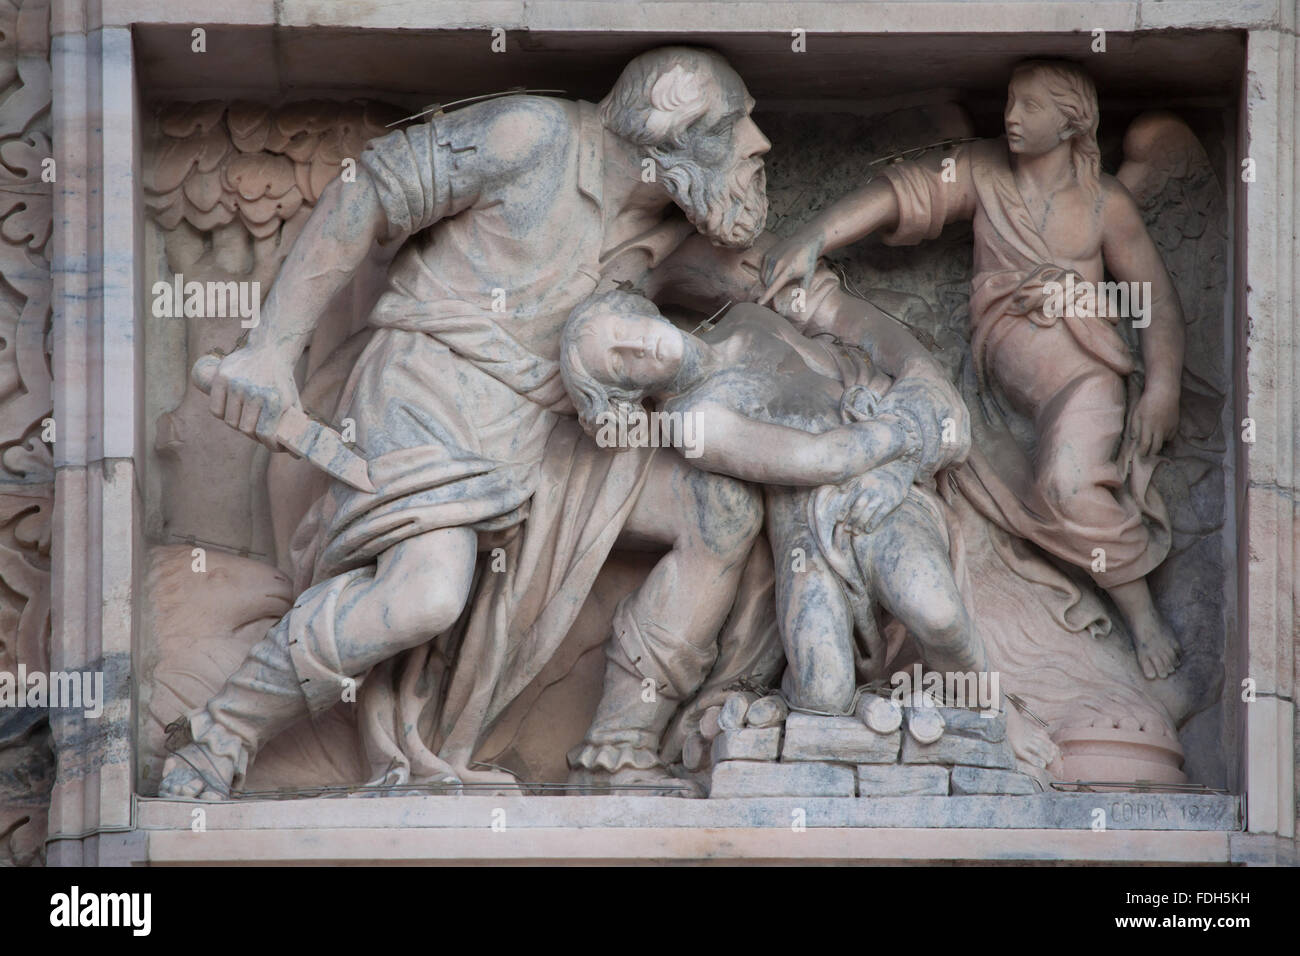 Sacrifice of Isaac. Marble relief by Italian sculptor Gaspare Vismara on the main facade of the Milan Cathedral - Stock Image